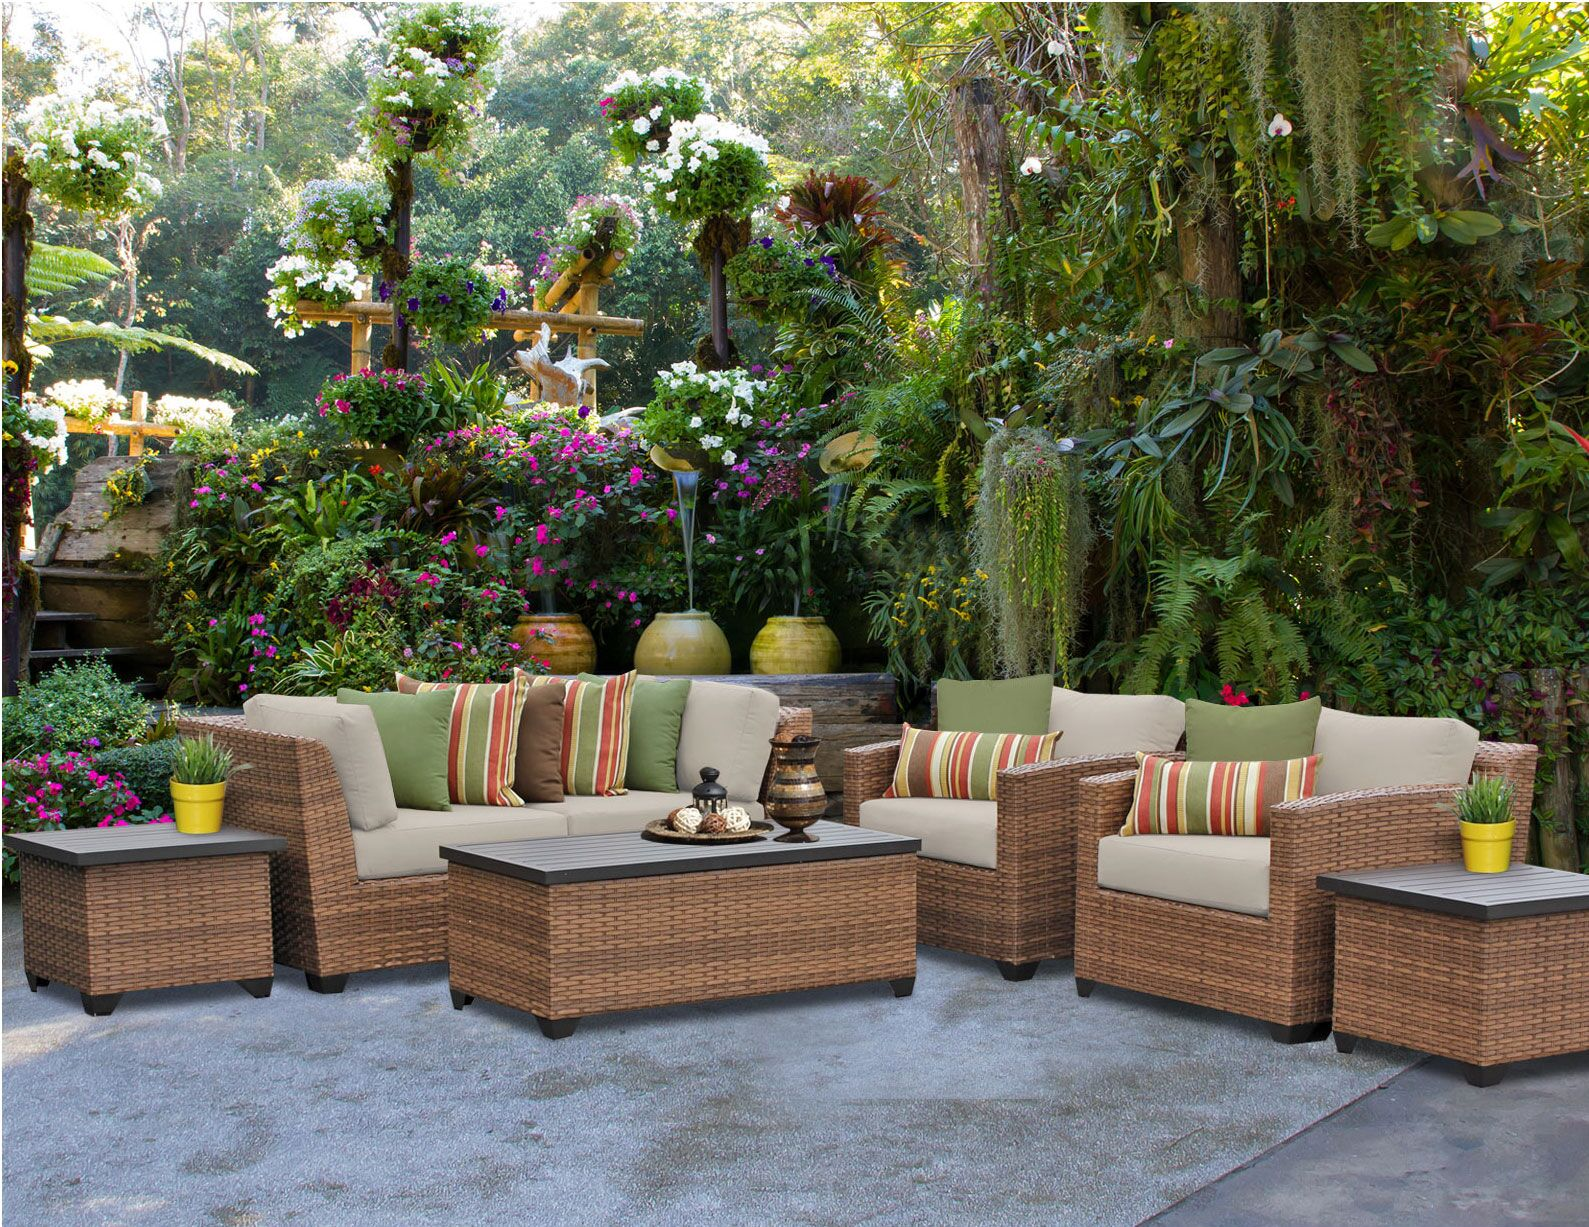 Asellus 7 Piece Rattan Sectional Set with Cushions Color: Beige